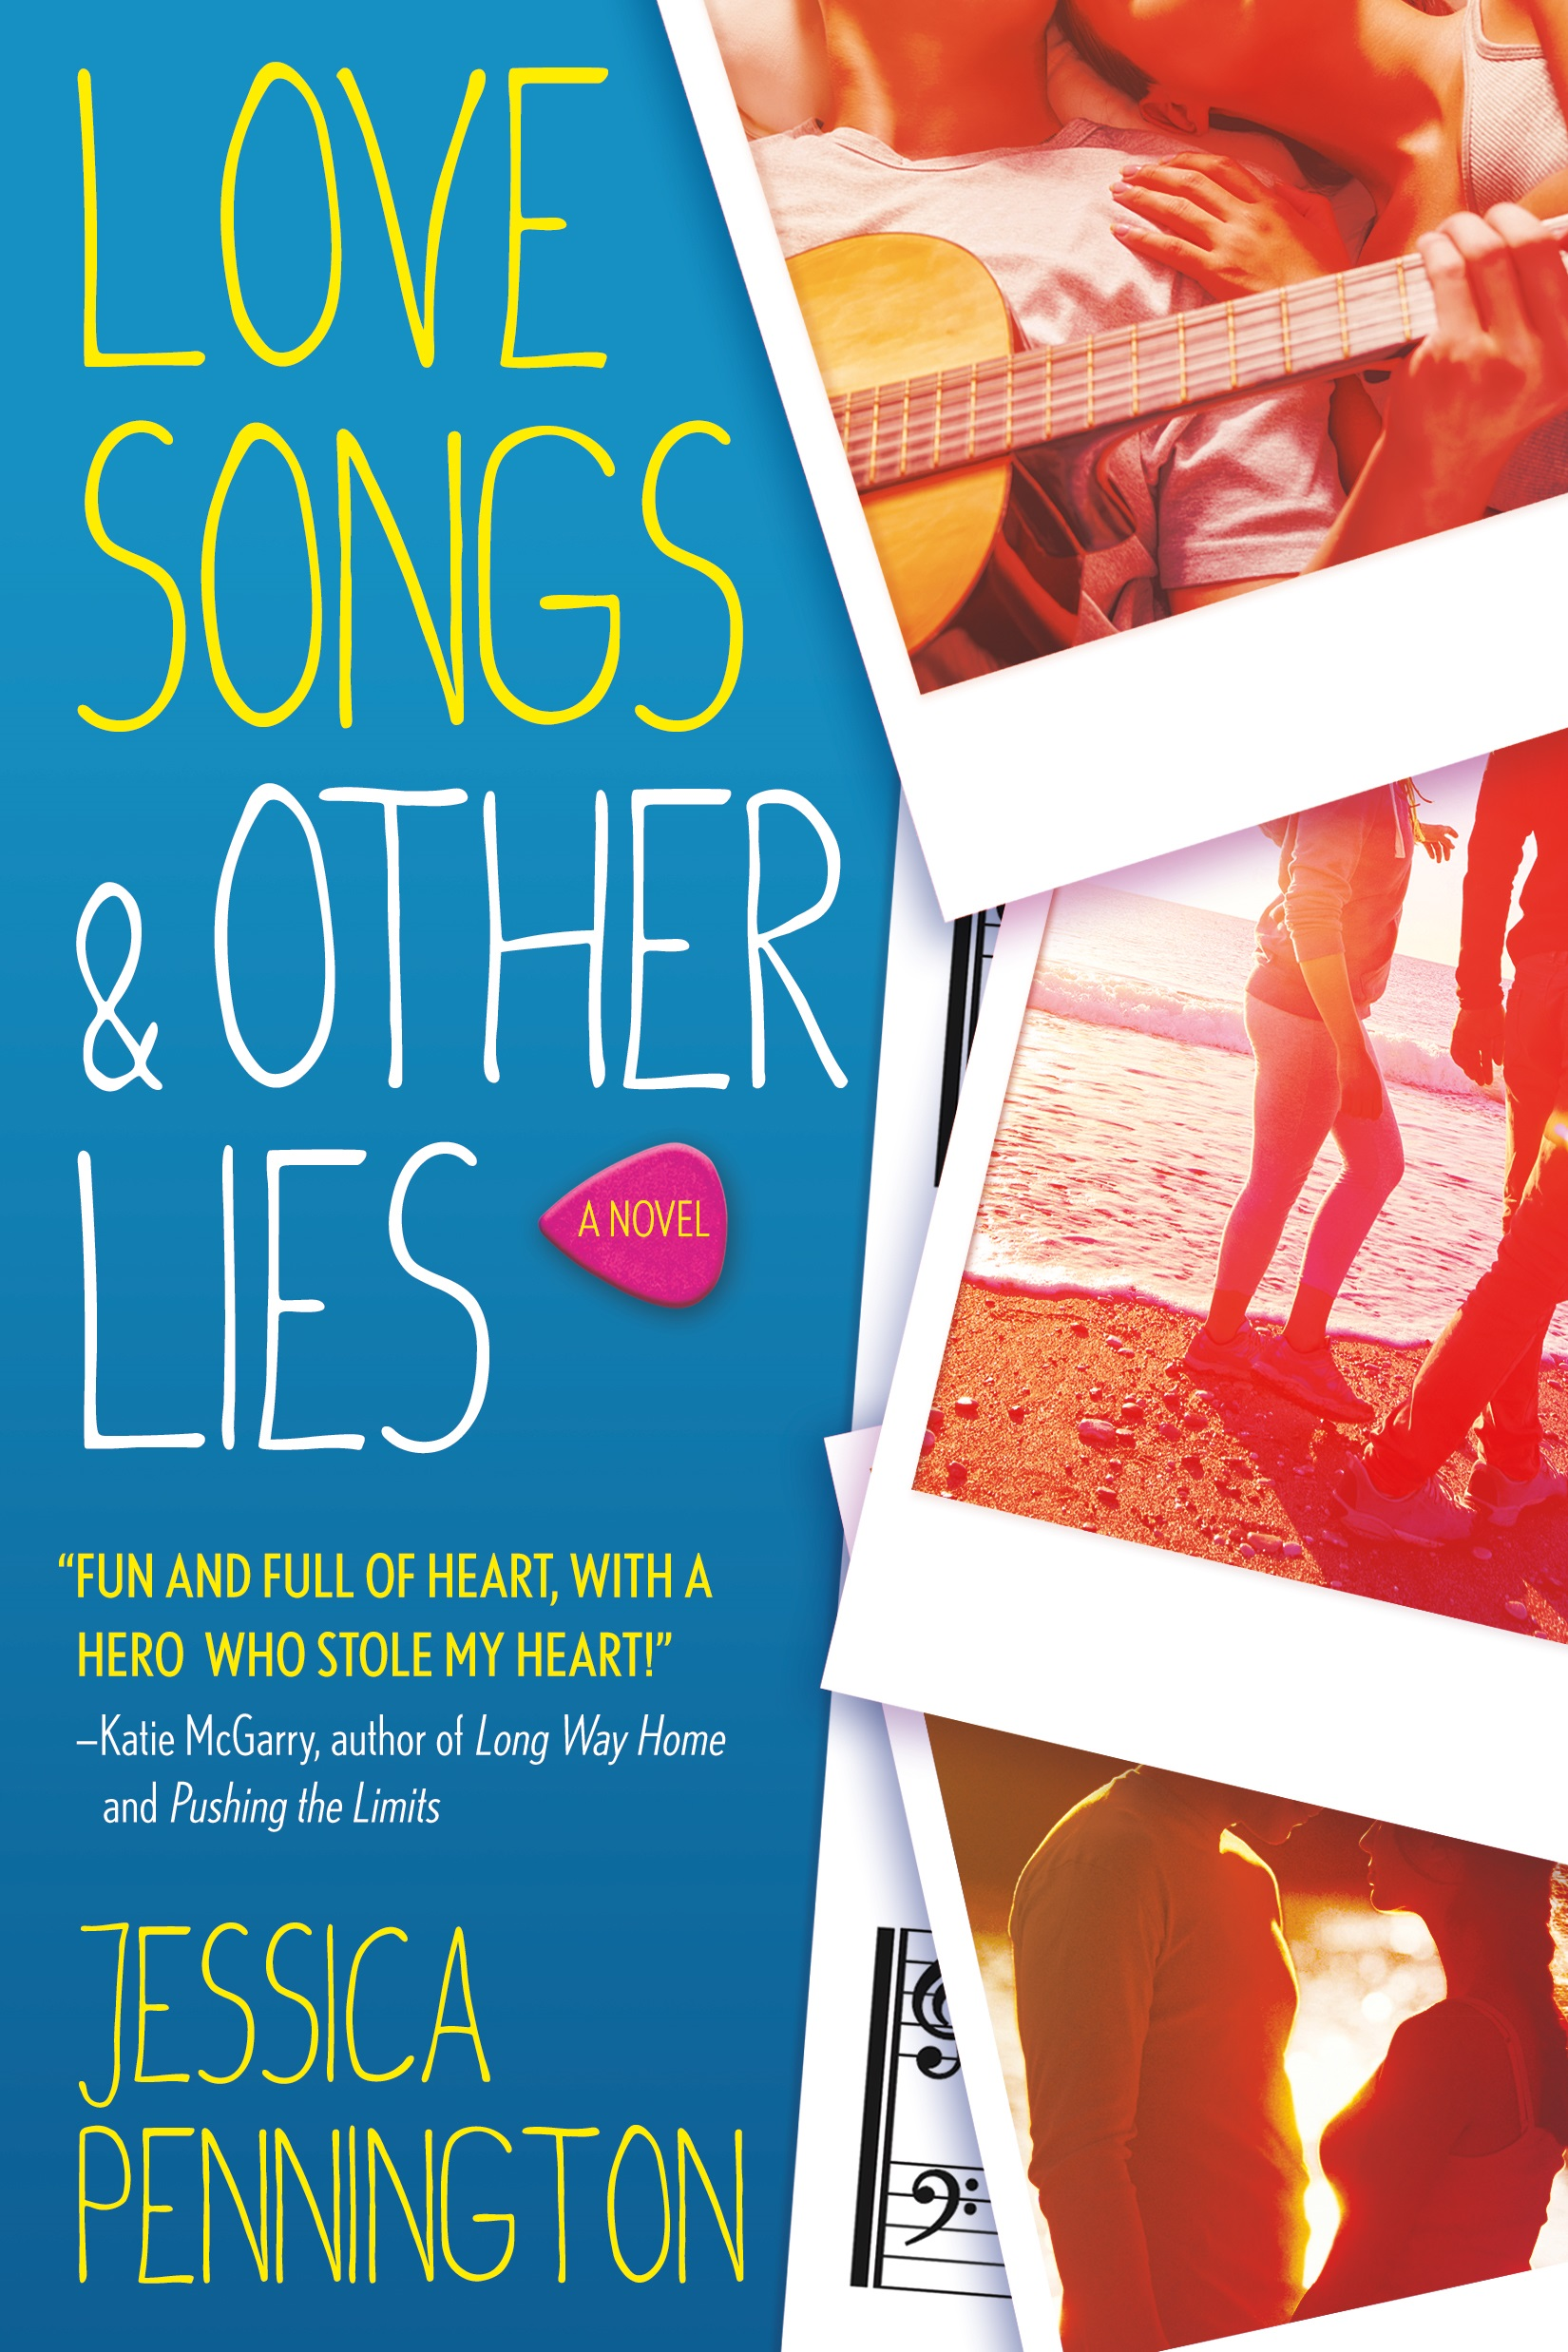 Blog Tour, Review & Giveaway: Love Songs & Other Lies by Jessica Pennington